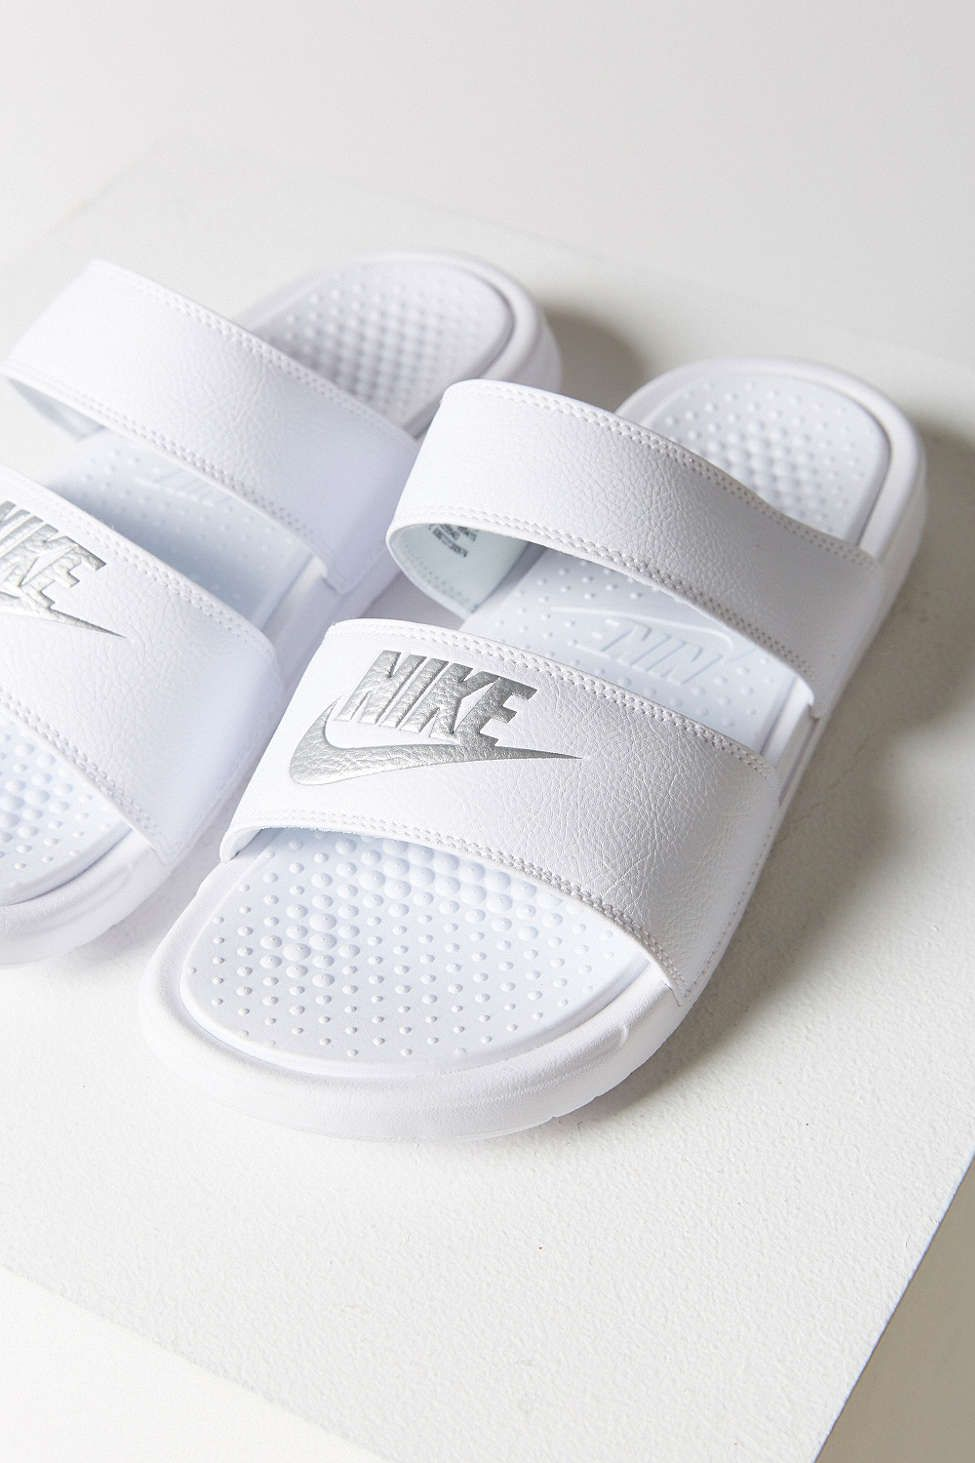 Nike Benassi Duo Ultra Slide Slide Sandals